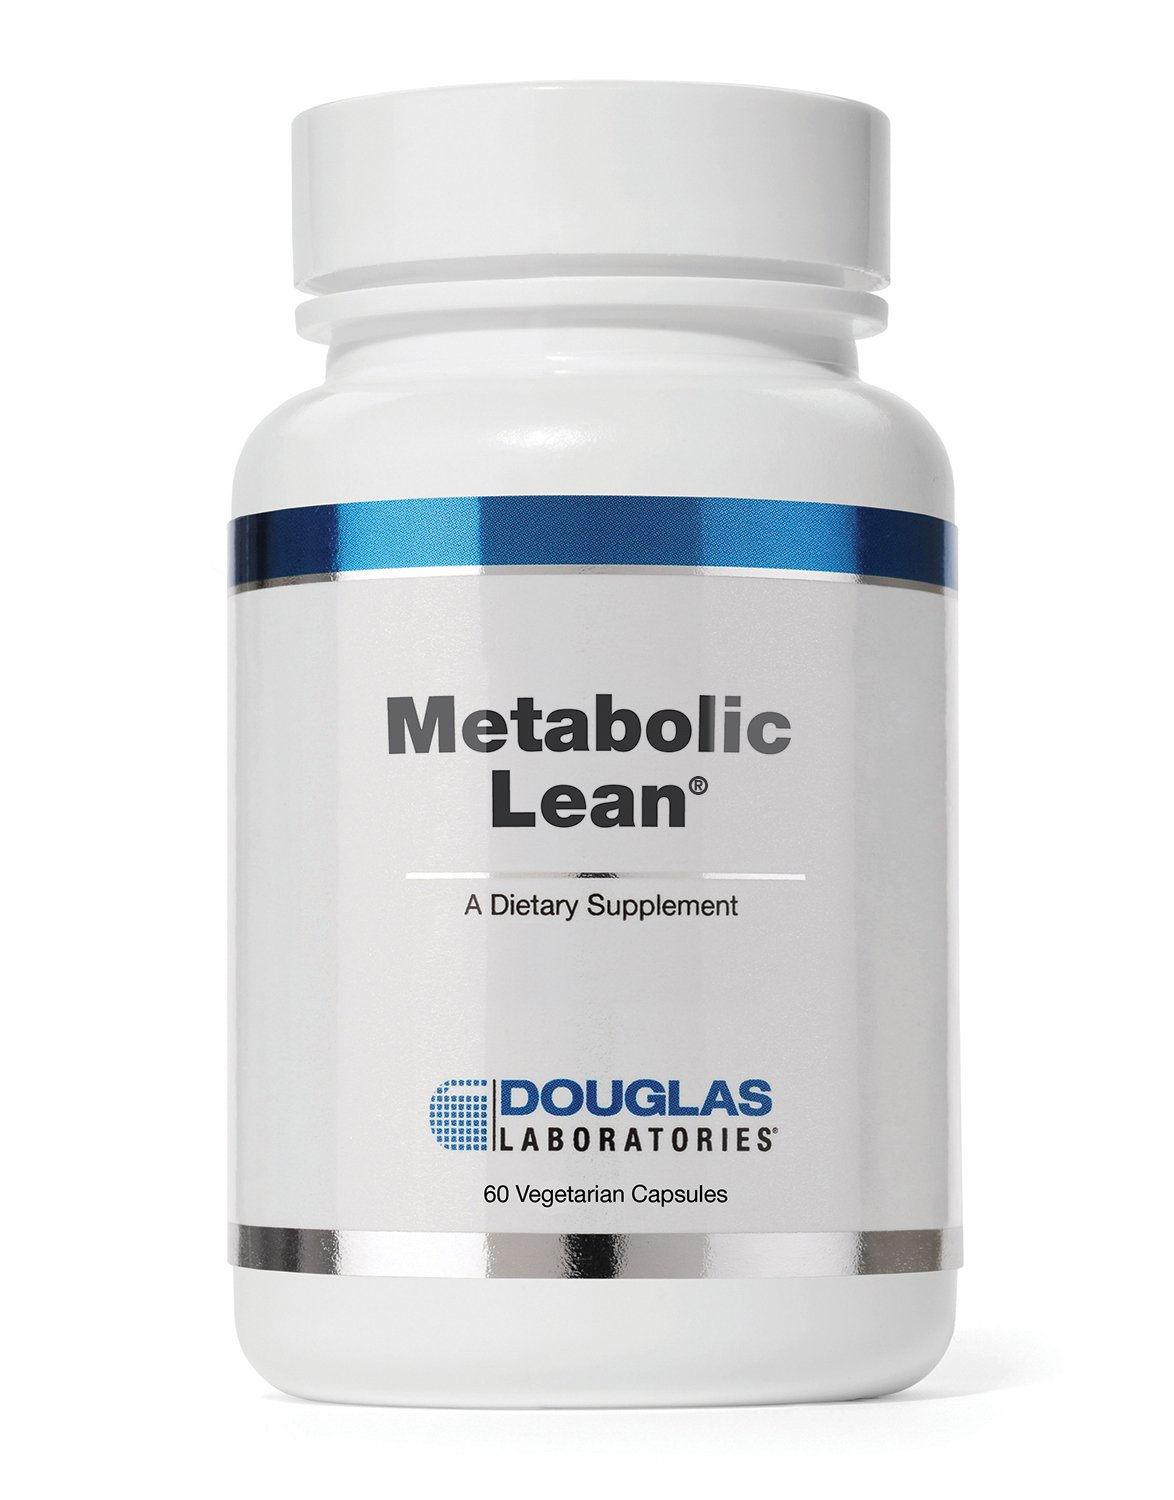 Douglas Laboratories - Metabolic Lean - Weight Management Formula to Support Proper Fat Metabolism* - 60 Capsules